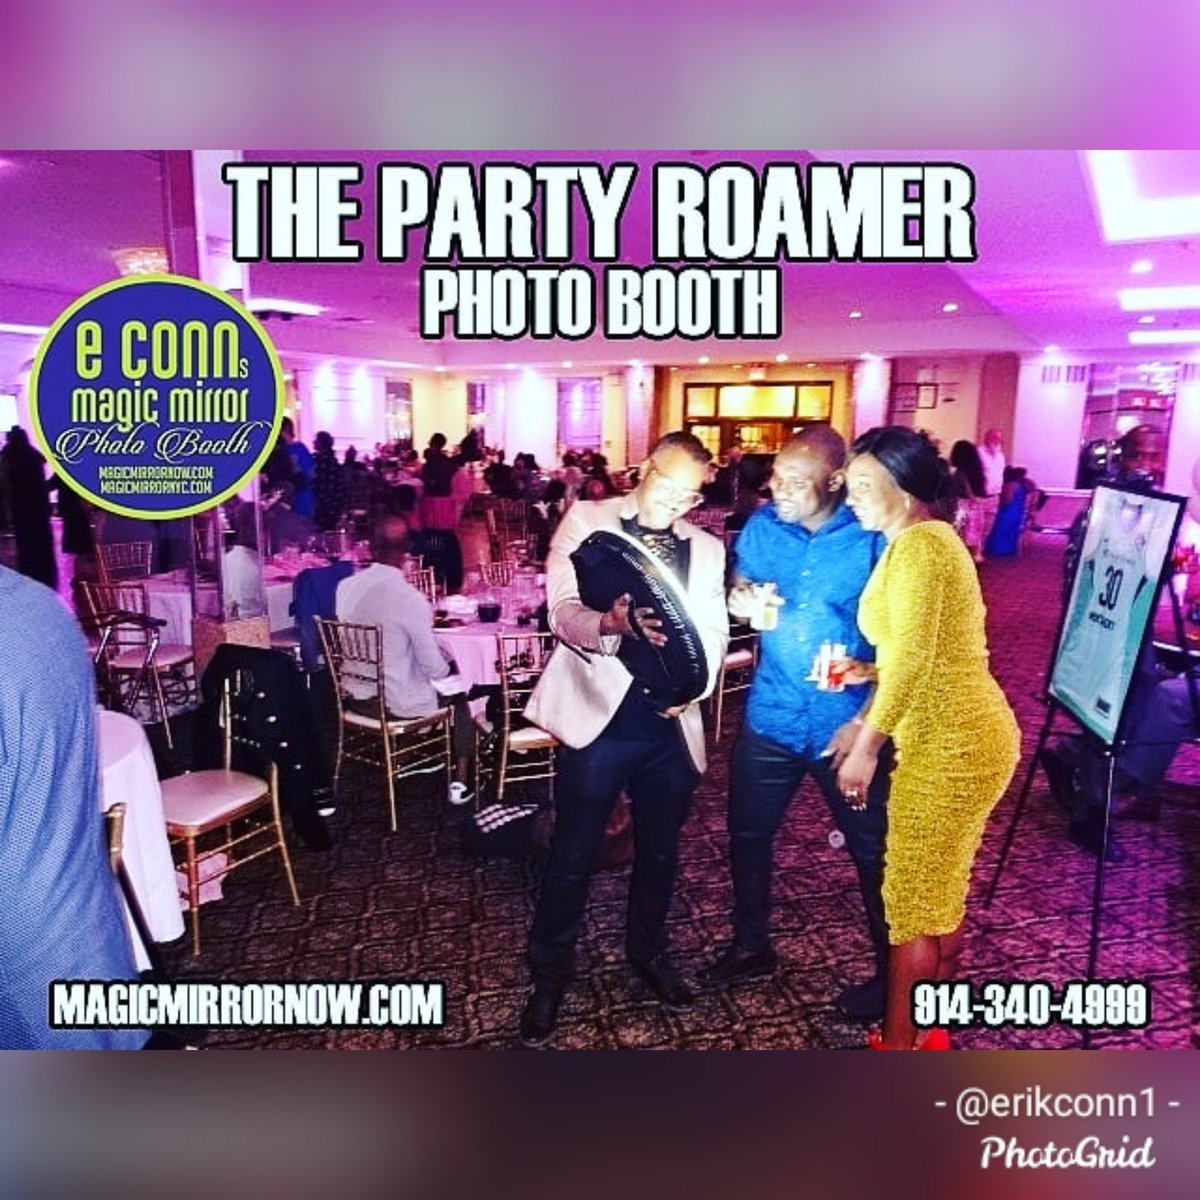 Marketing! Let's Go! Rent the Tri-States #1 E Conn's Magic Mirror Photo Booth and http://ThePartyRoamer.com   #blackexcellence #thepartyroamer #partyroamernyc #magicmirror #mirrormebooth #photobooth #birthdays #weddings #corporateevents #prom #graduations #westchestereventspic.twitter.com/7q9o7KzgyQ